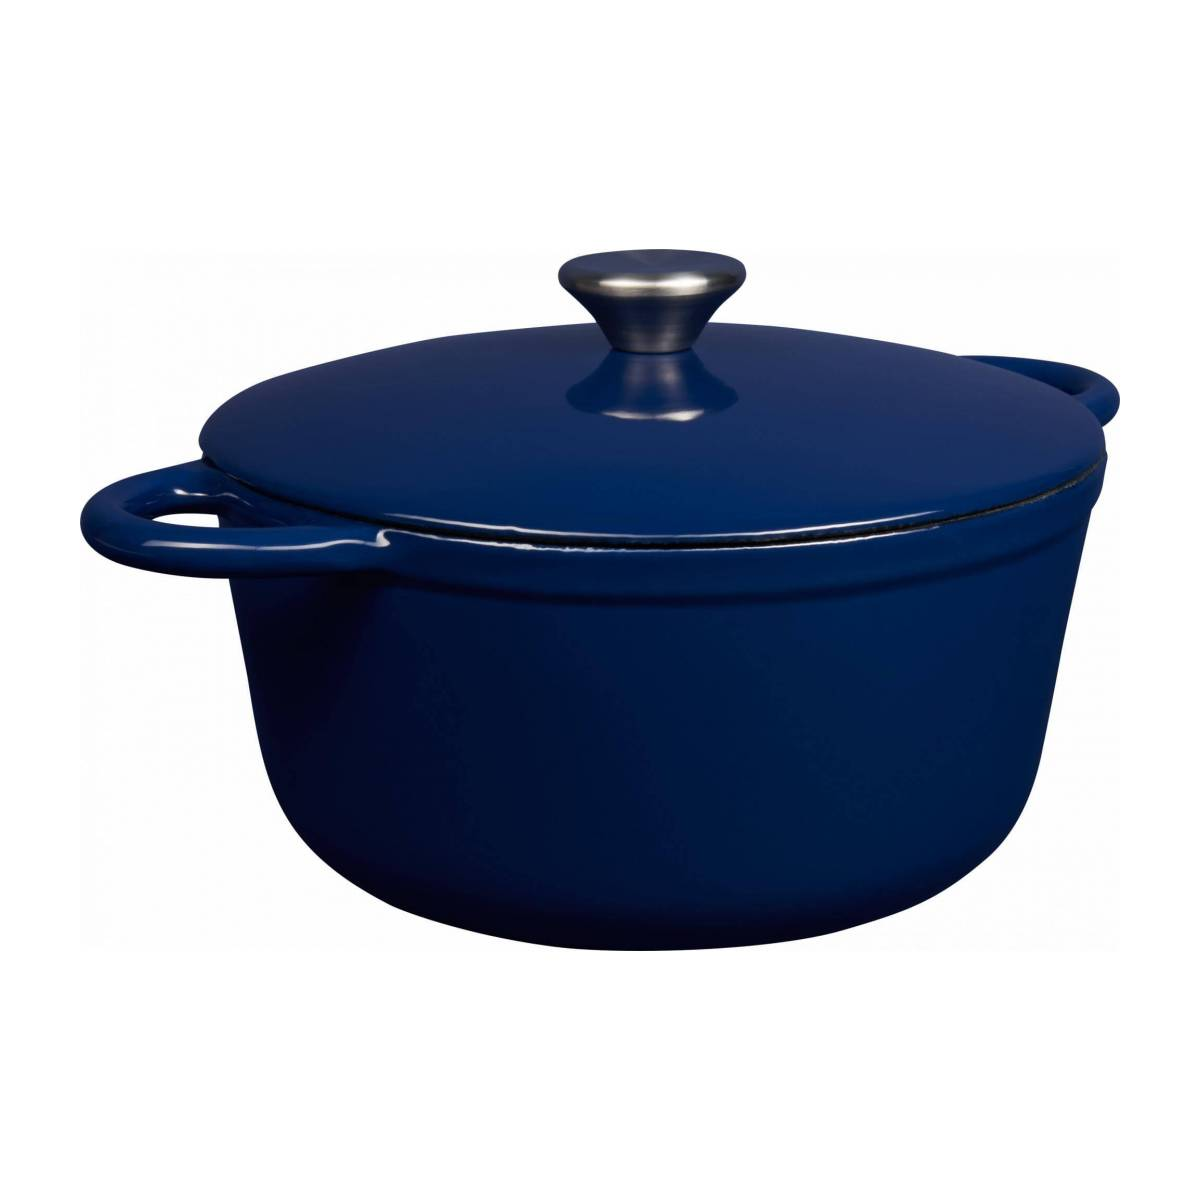 Cast iron cooker 23 cm, blue n°1